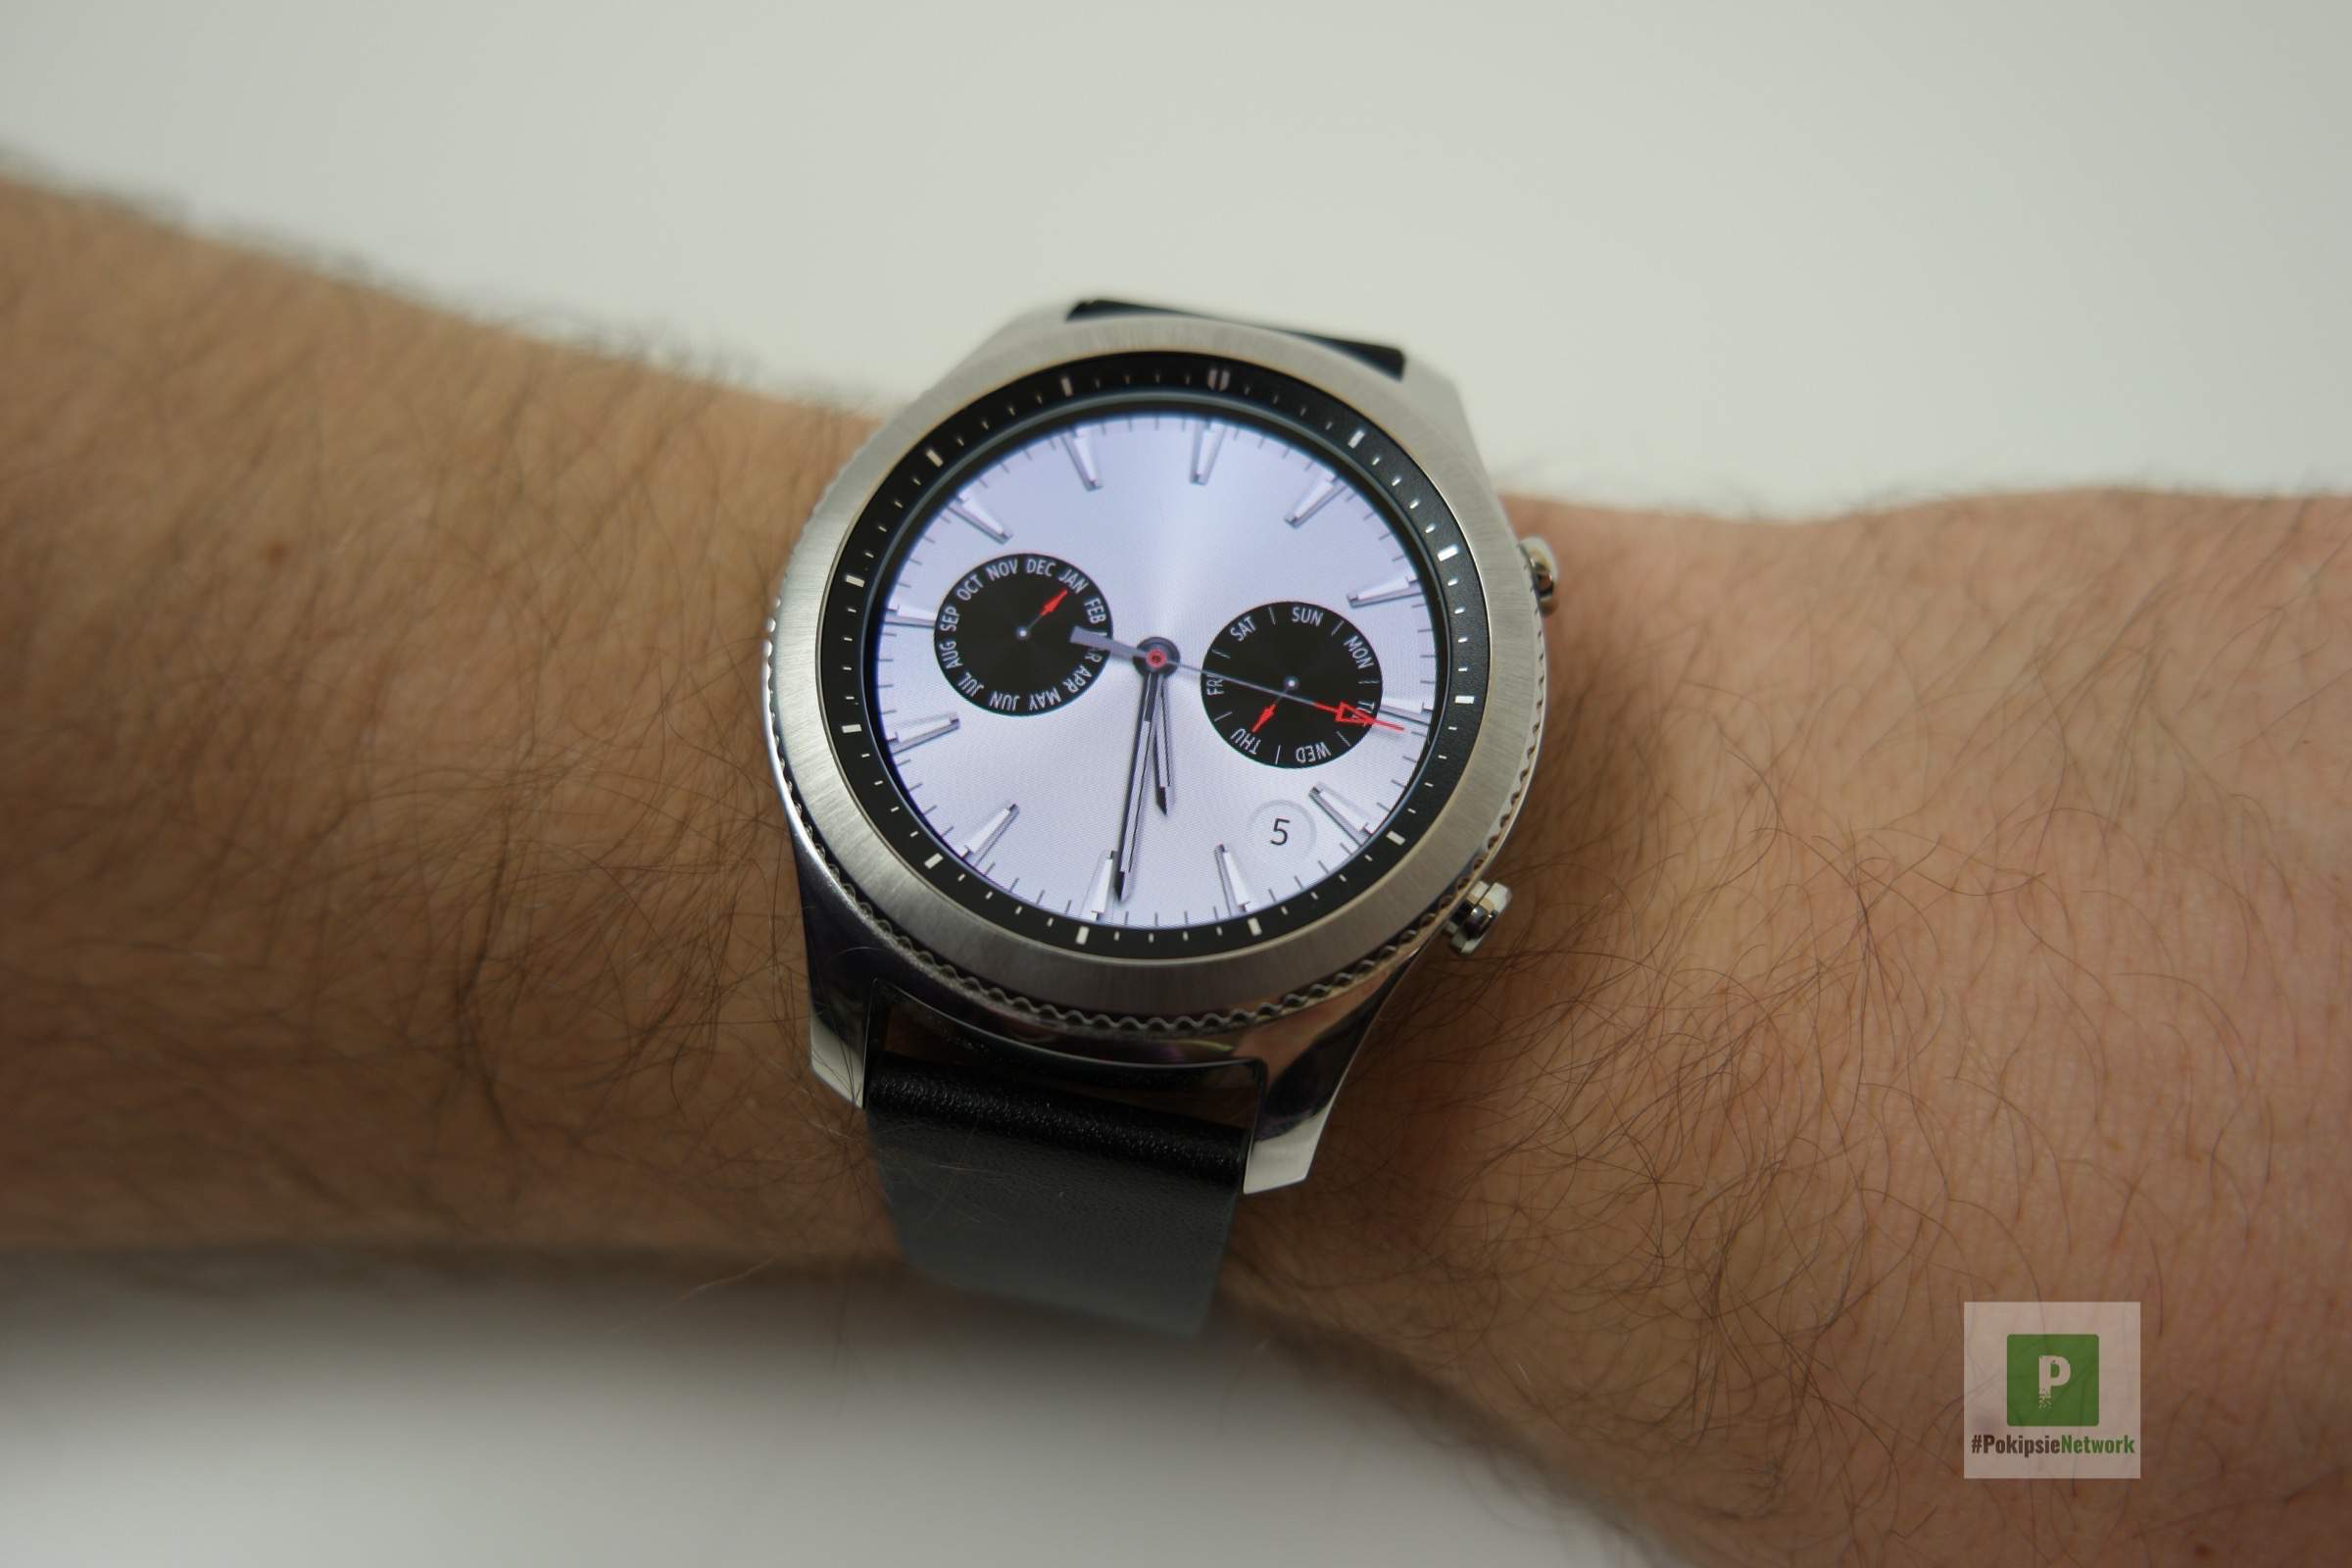 Windows 10 mit der Samsung Gear S3 entsperren